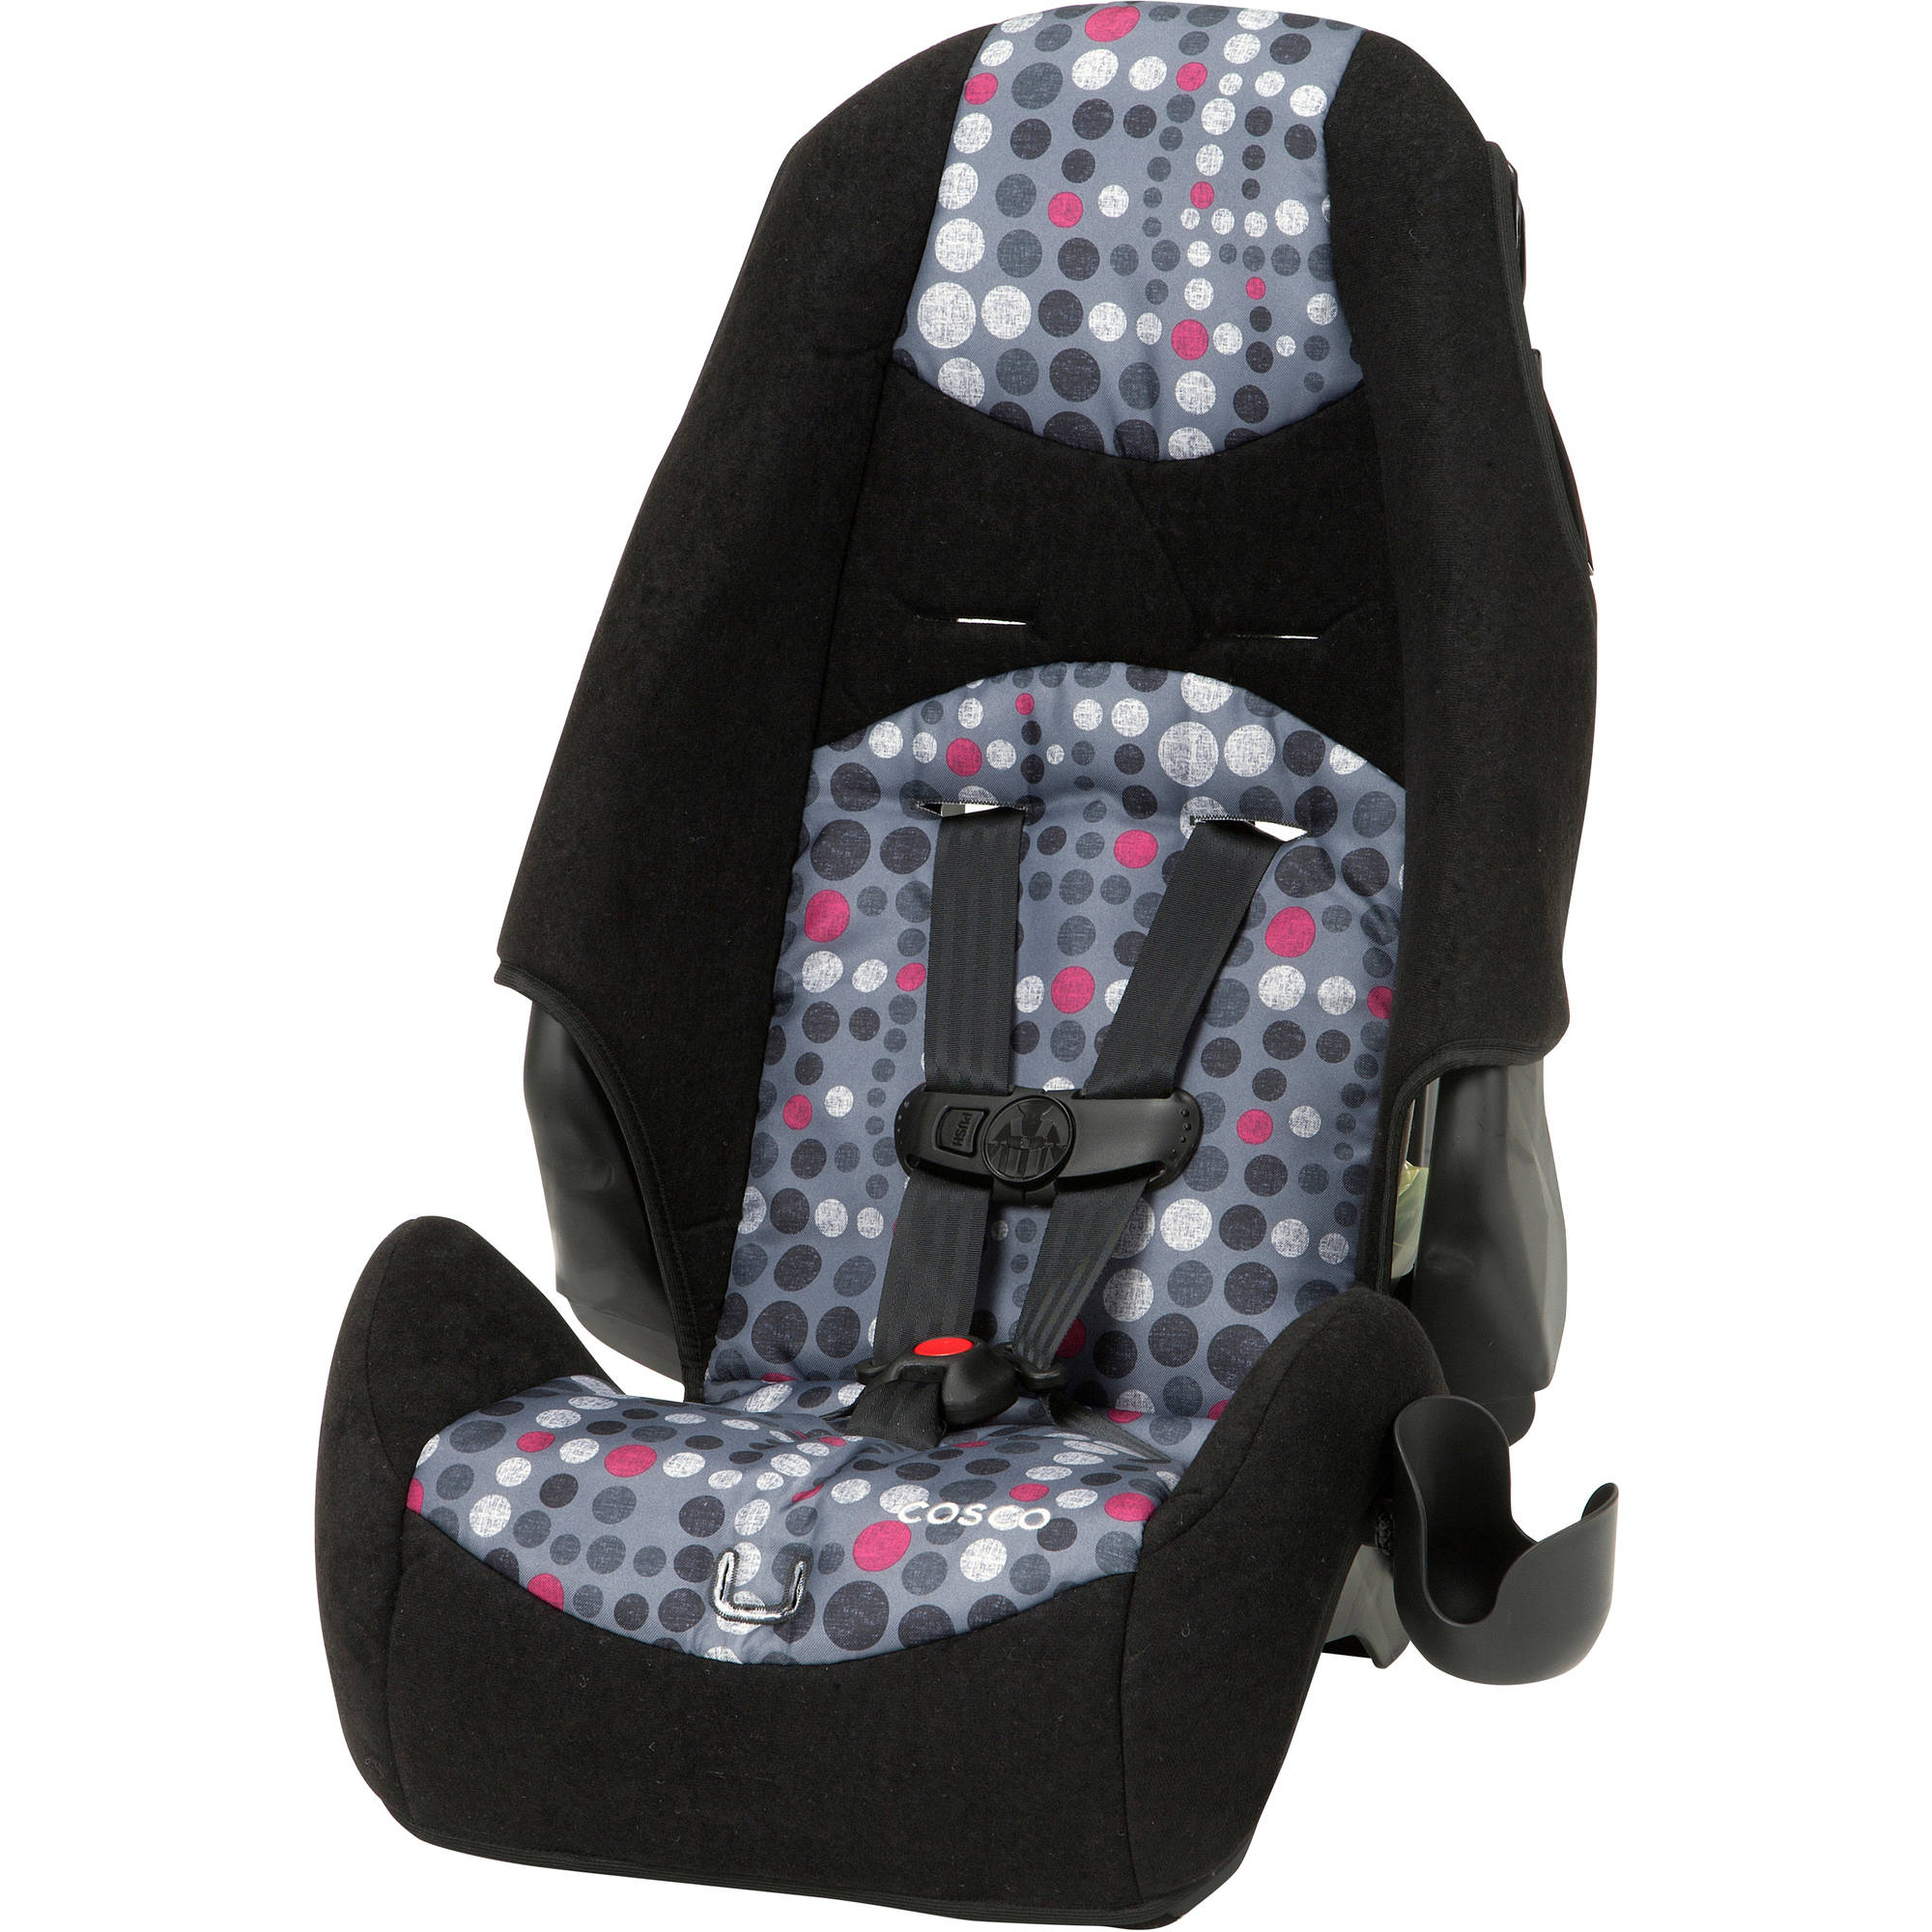 Cosco Highback 2-in-1 Booster Car Seat, Lots Of Dots